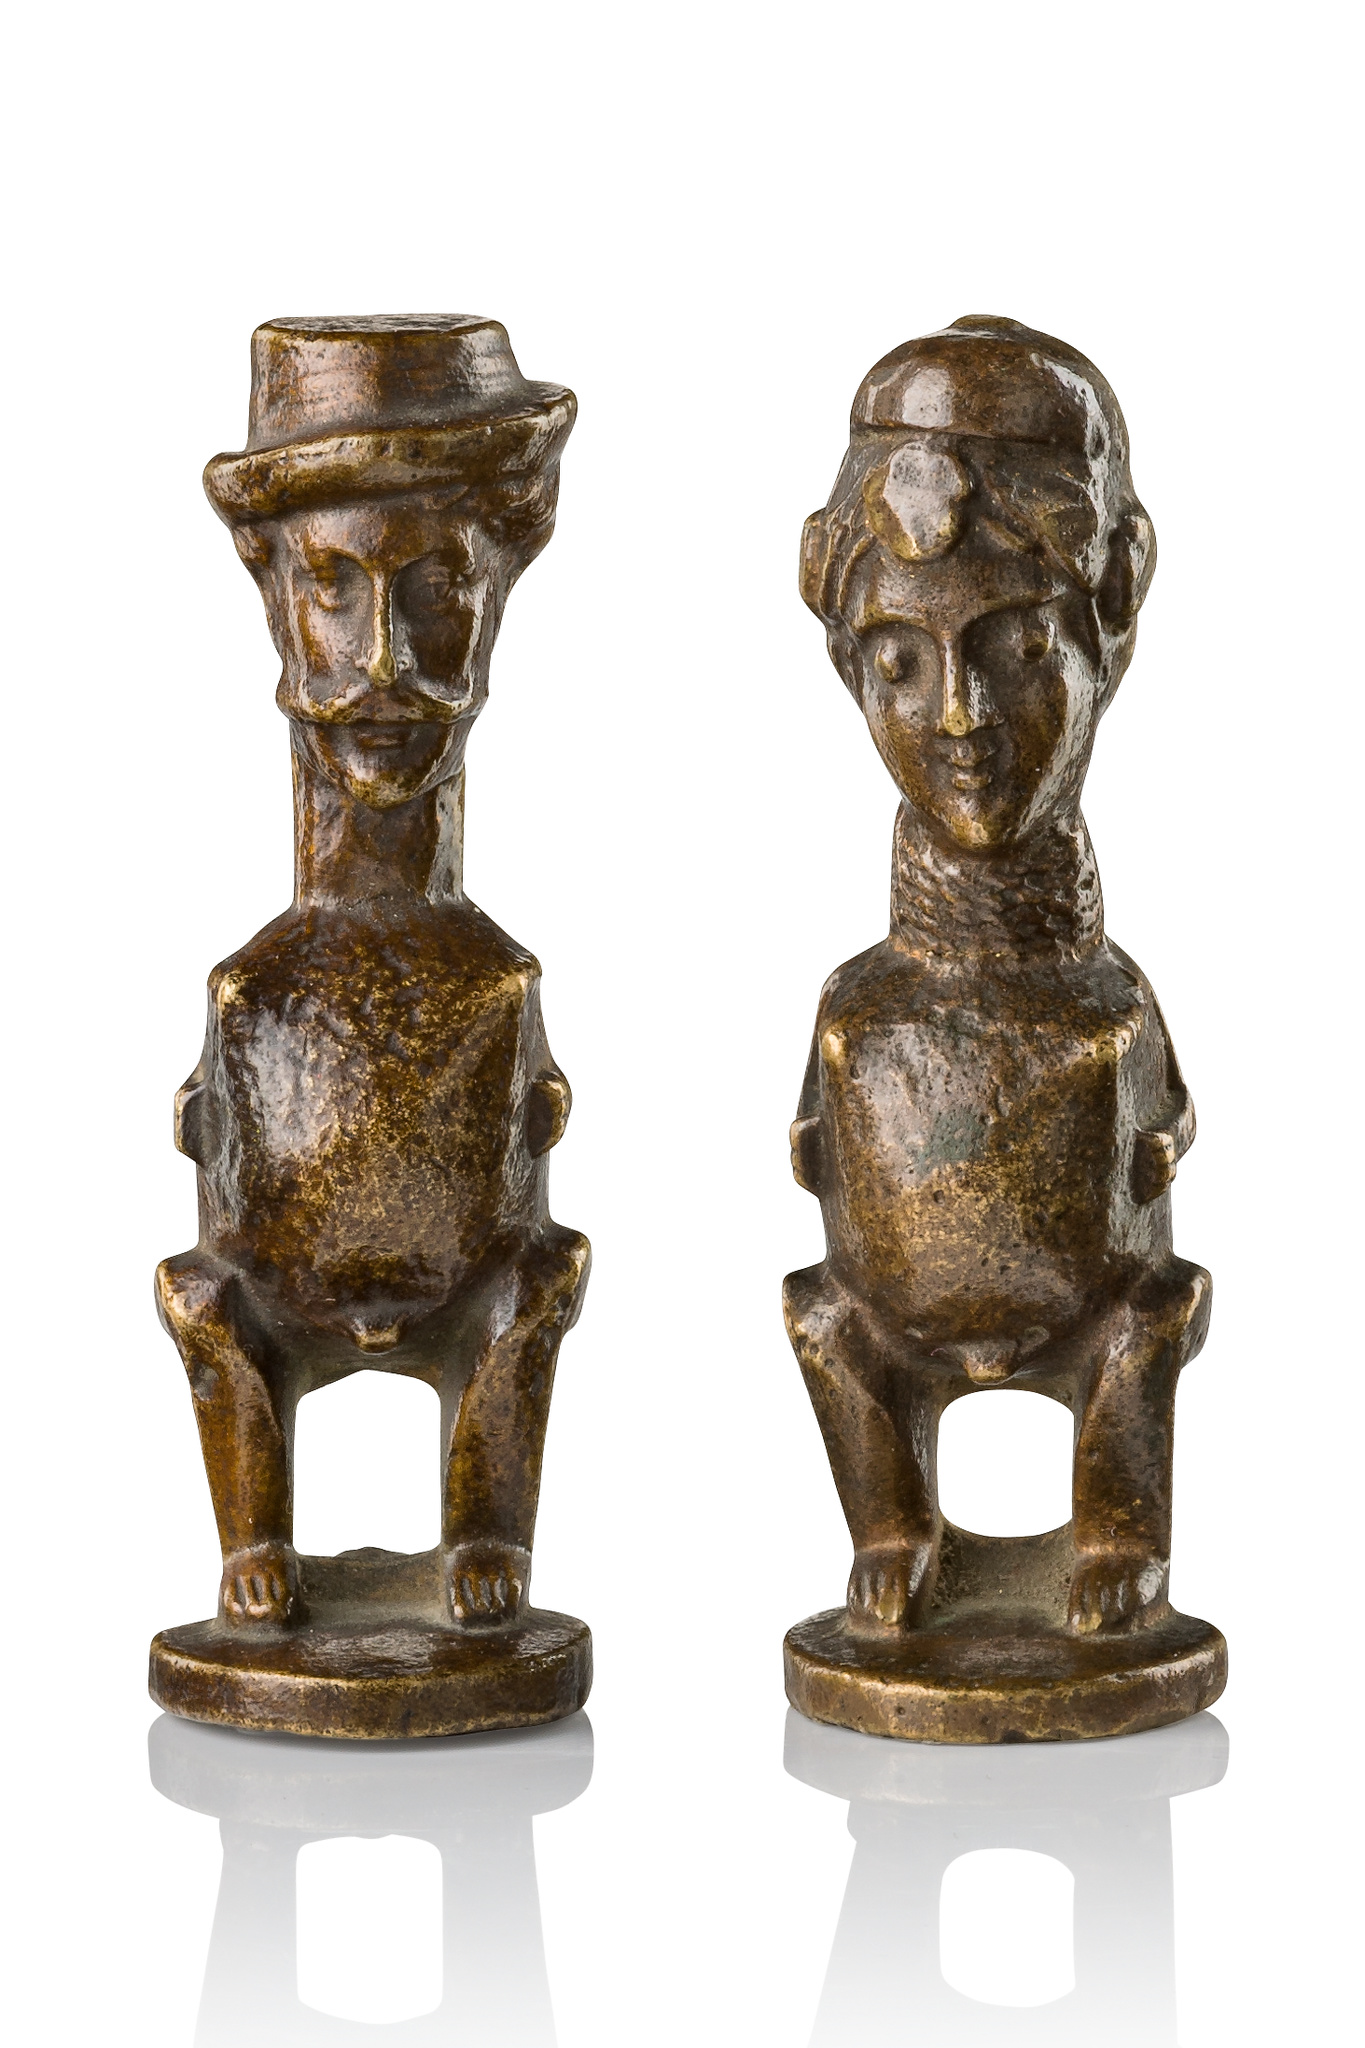 Two figures in colon style